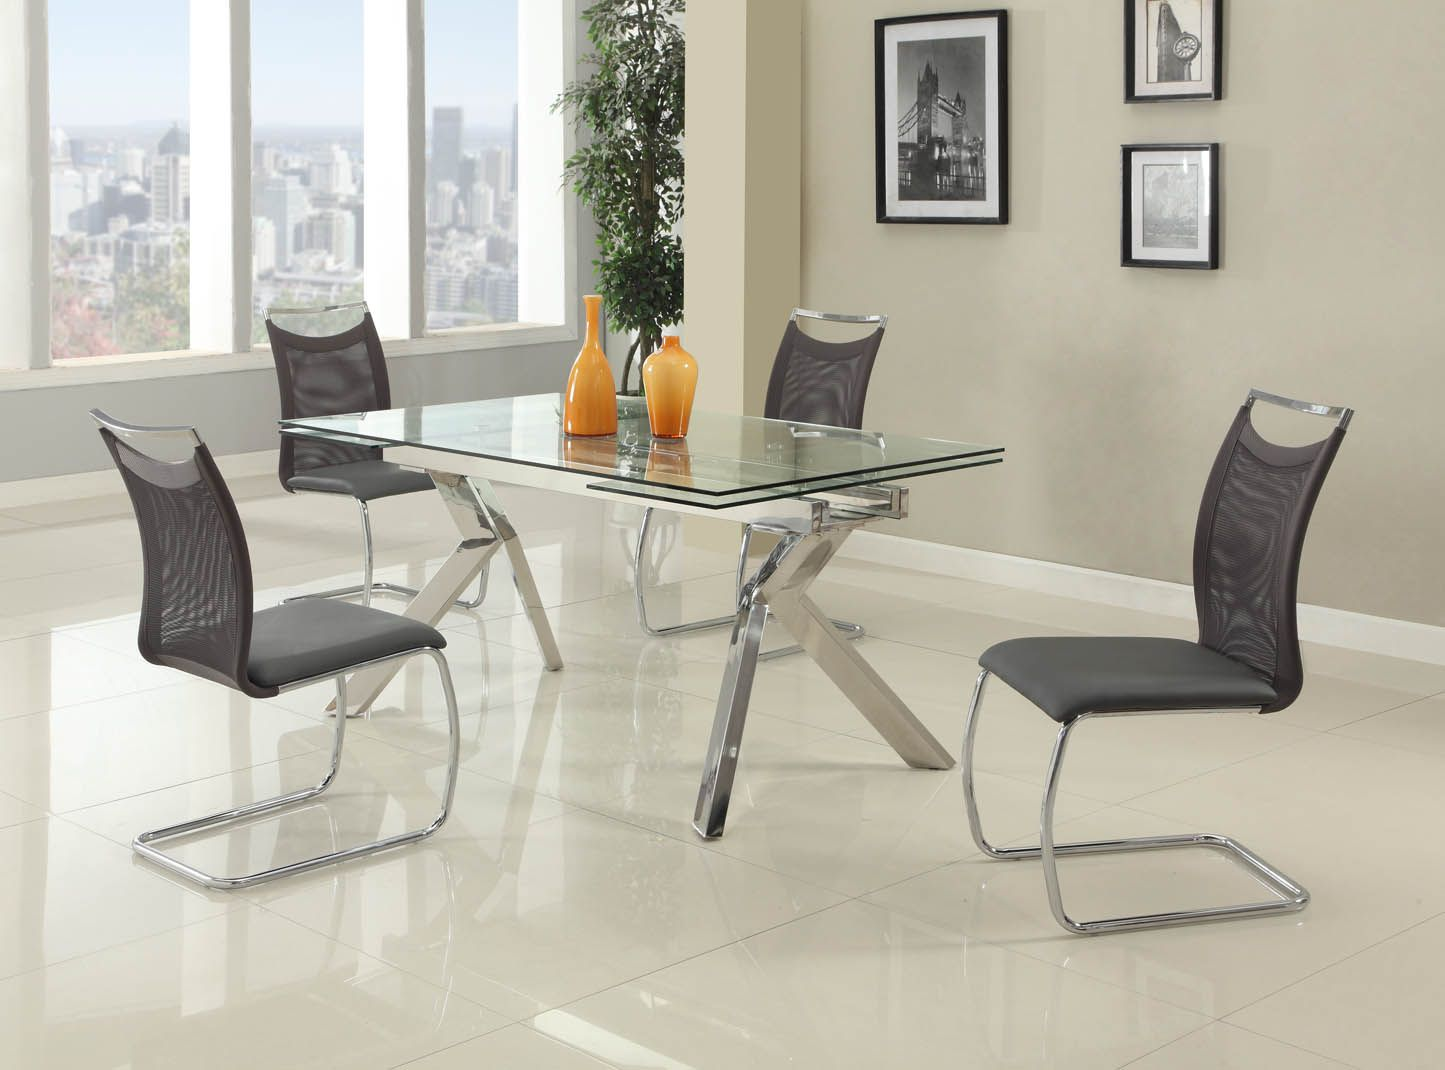 Fashionable Rectangular Glass Top Leather Kitchen Dinette Sets Houston Texas Chintaly Ella Nadine